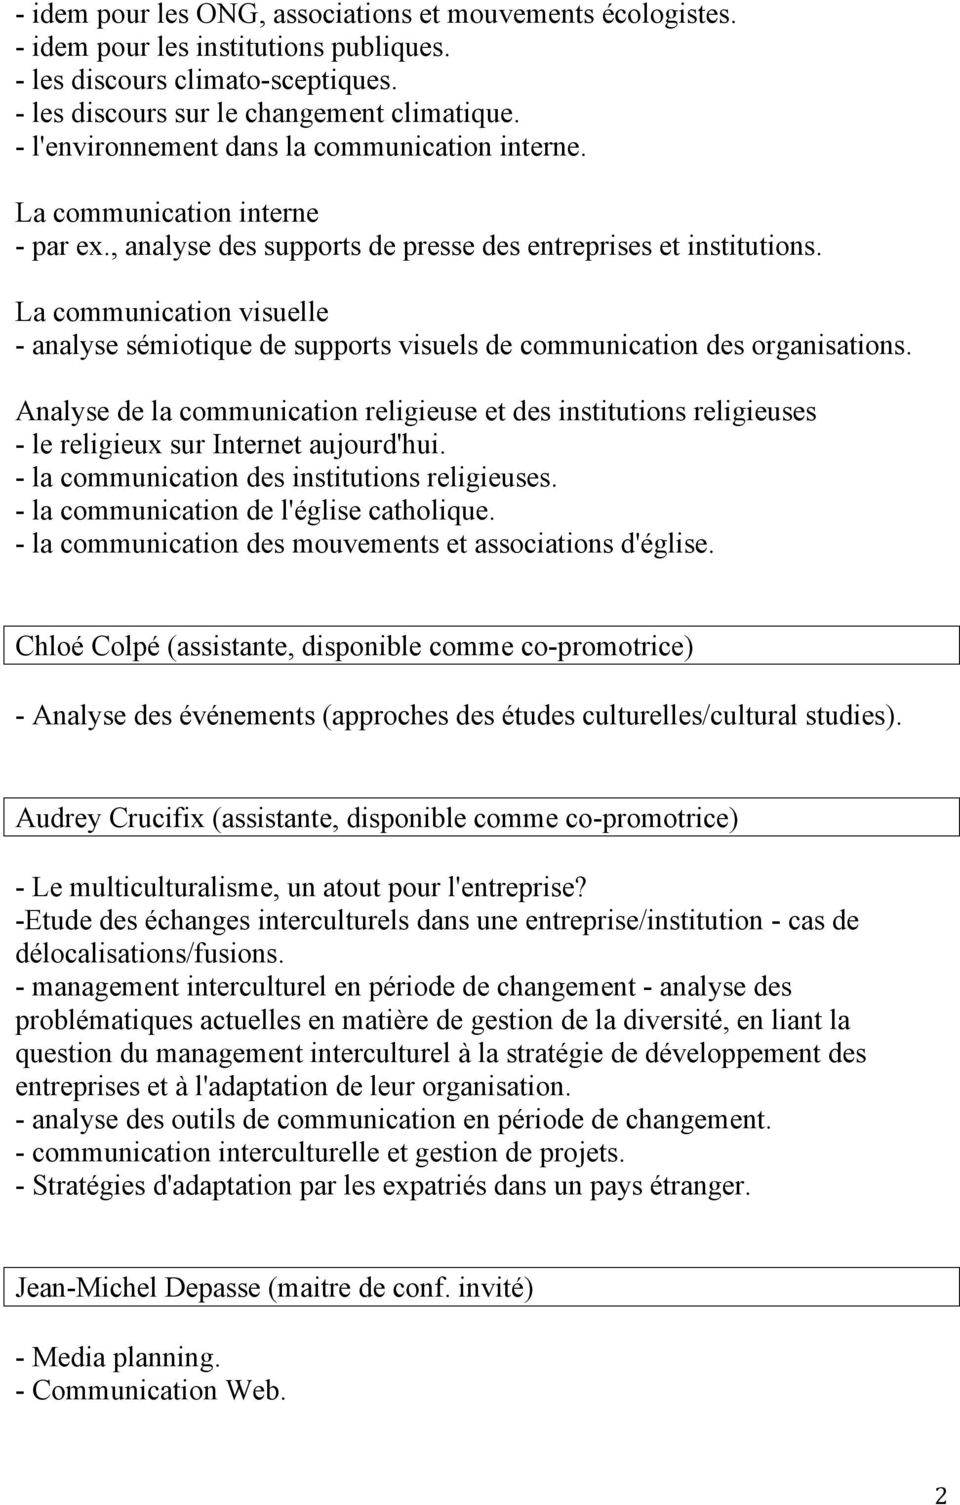 La communication visuelle - analyse sémiotique de supports visuels de communication des organisations.